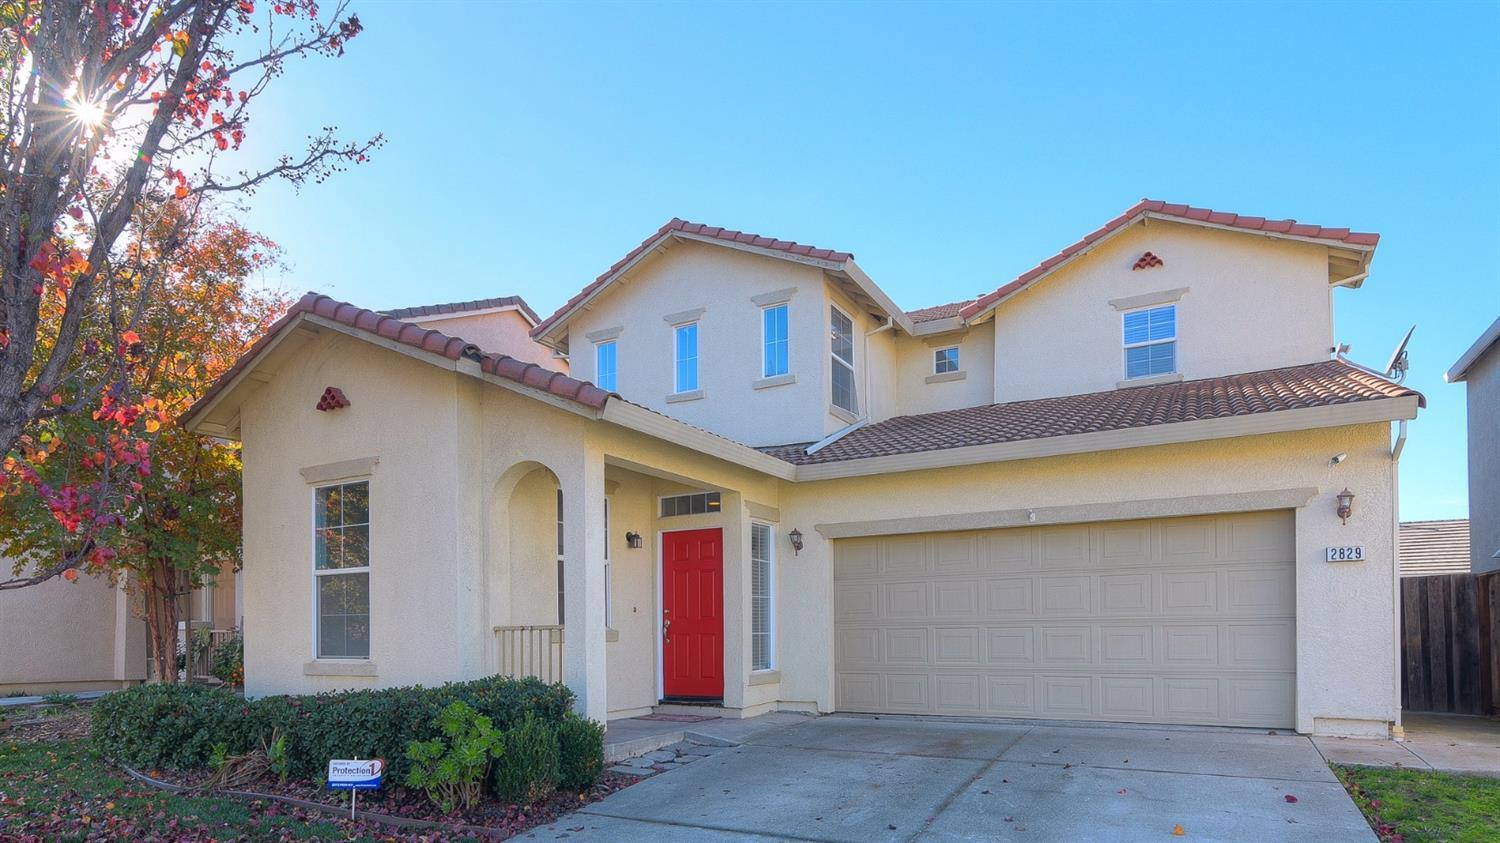 2829 Frigate Bird Dr For Rent - Sacramento, CA | Trulia